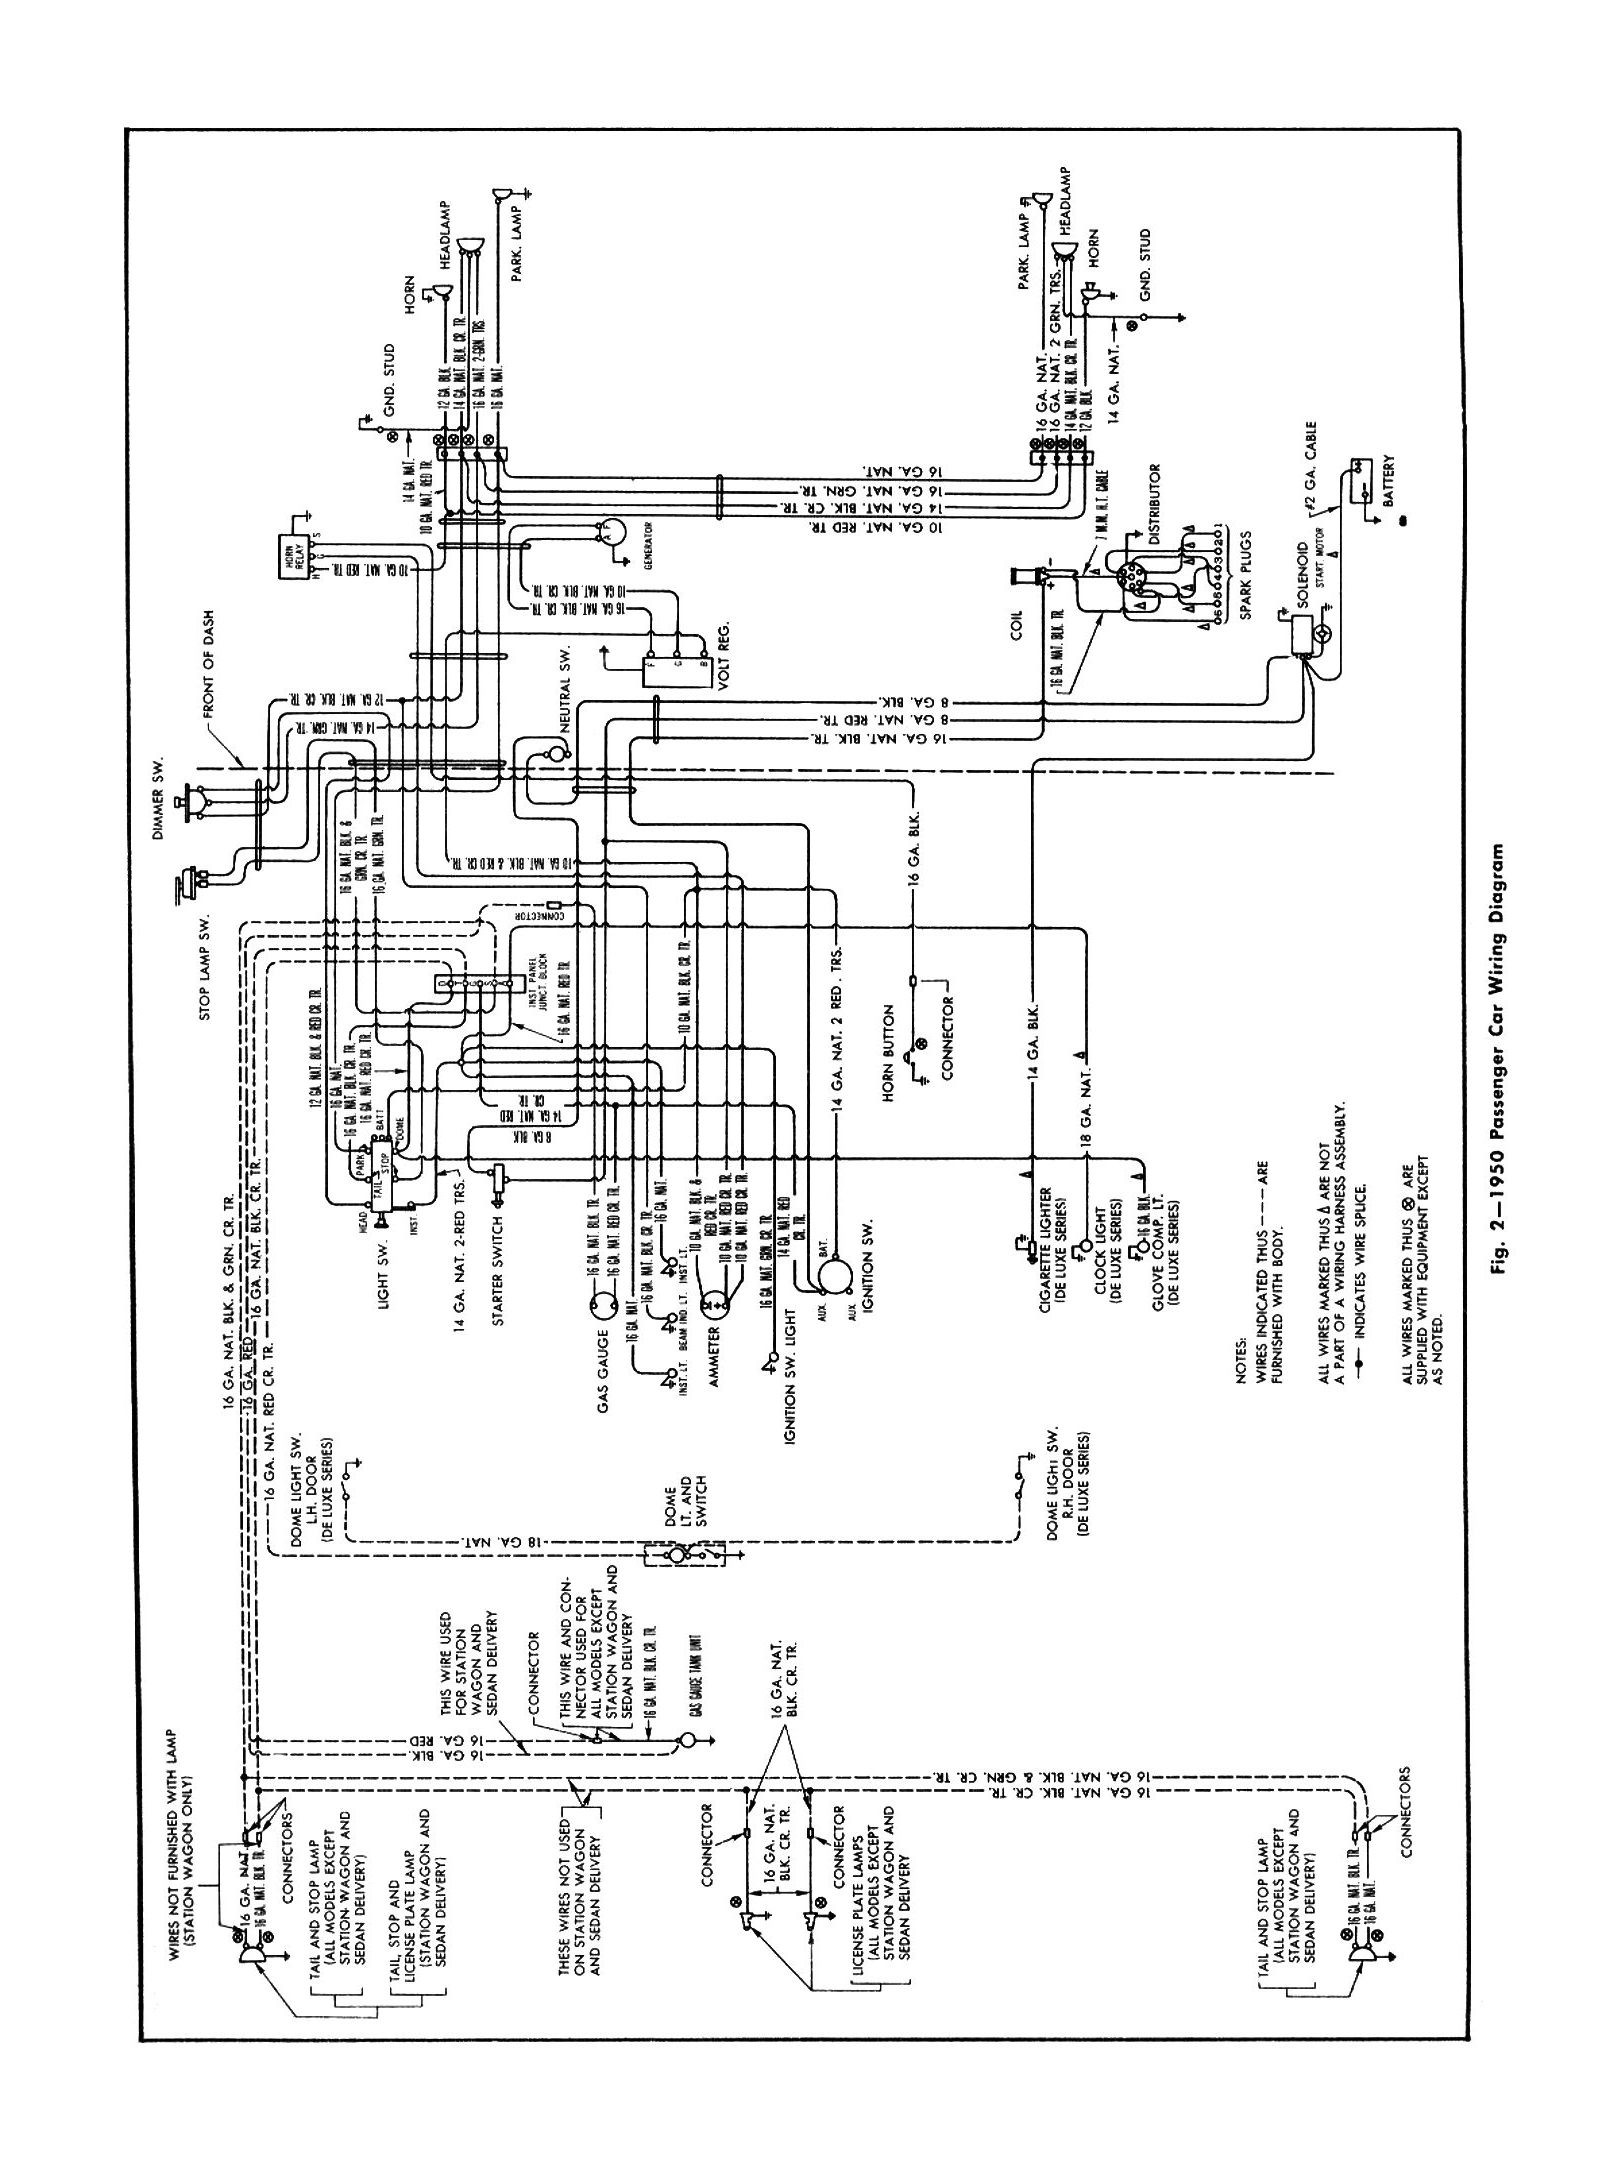 50 Chevy Starter Schematic Download Wiring Diagrams Ford Motor Diagram Rh Oldcarmanualproject Com